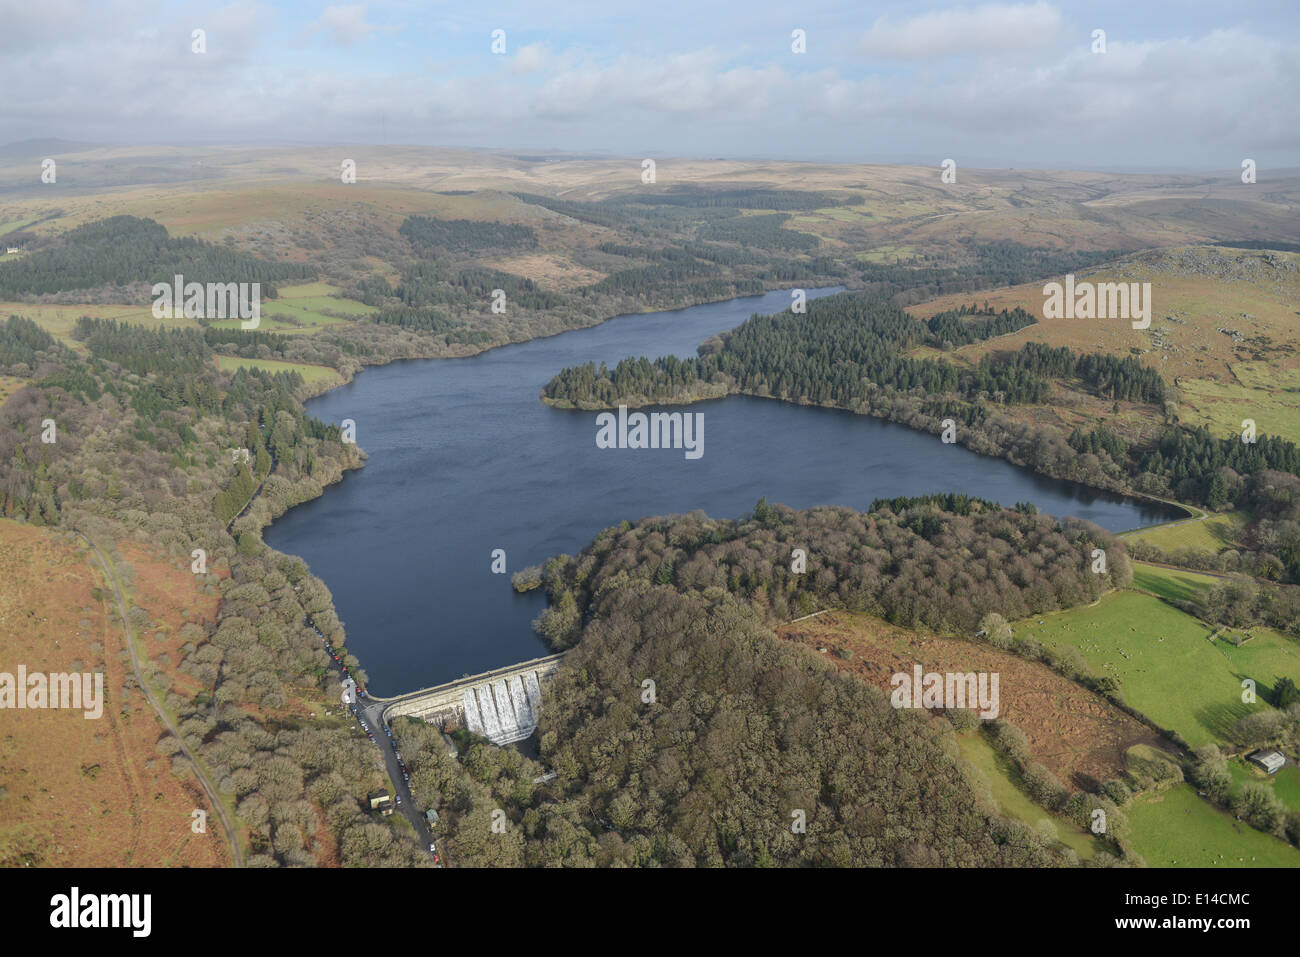 A scenic aerial view of the Burrador Reservoir, near Plymouth UK - Stock Image